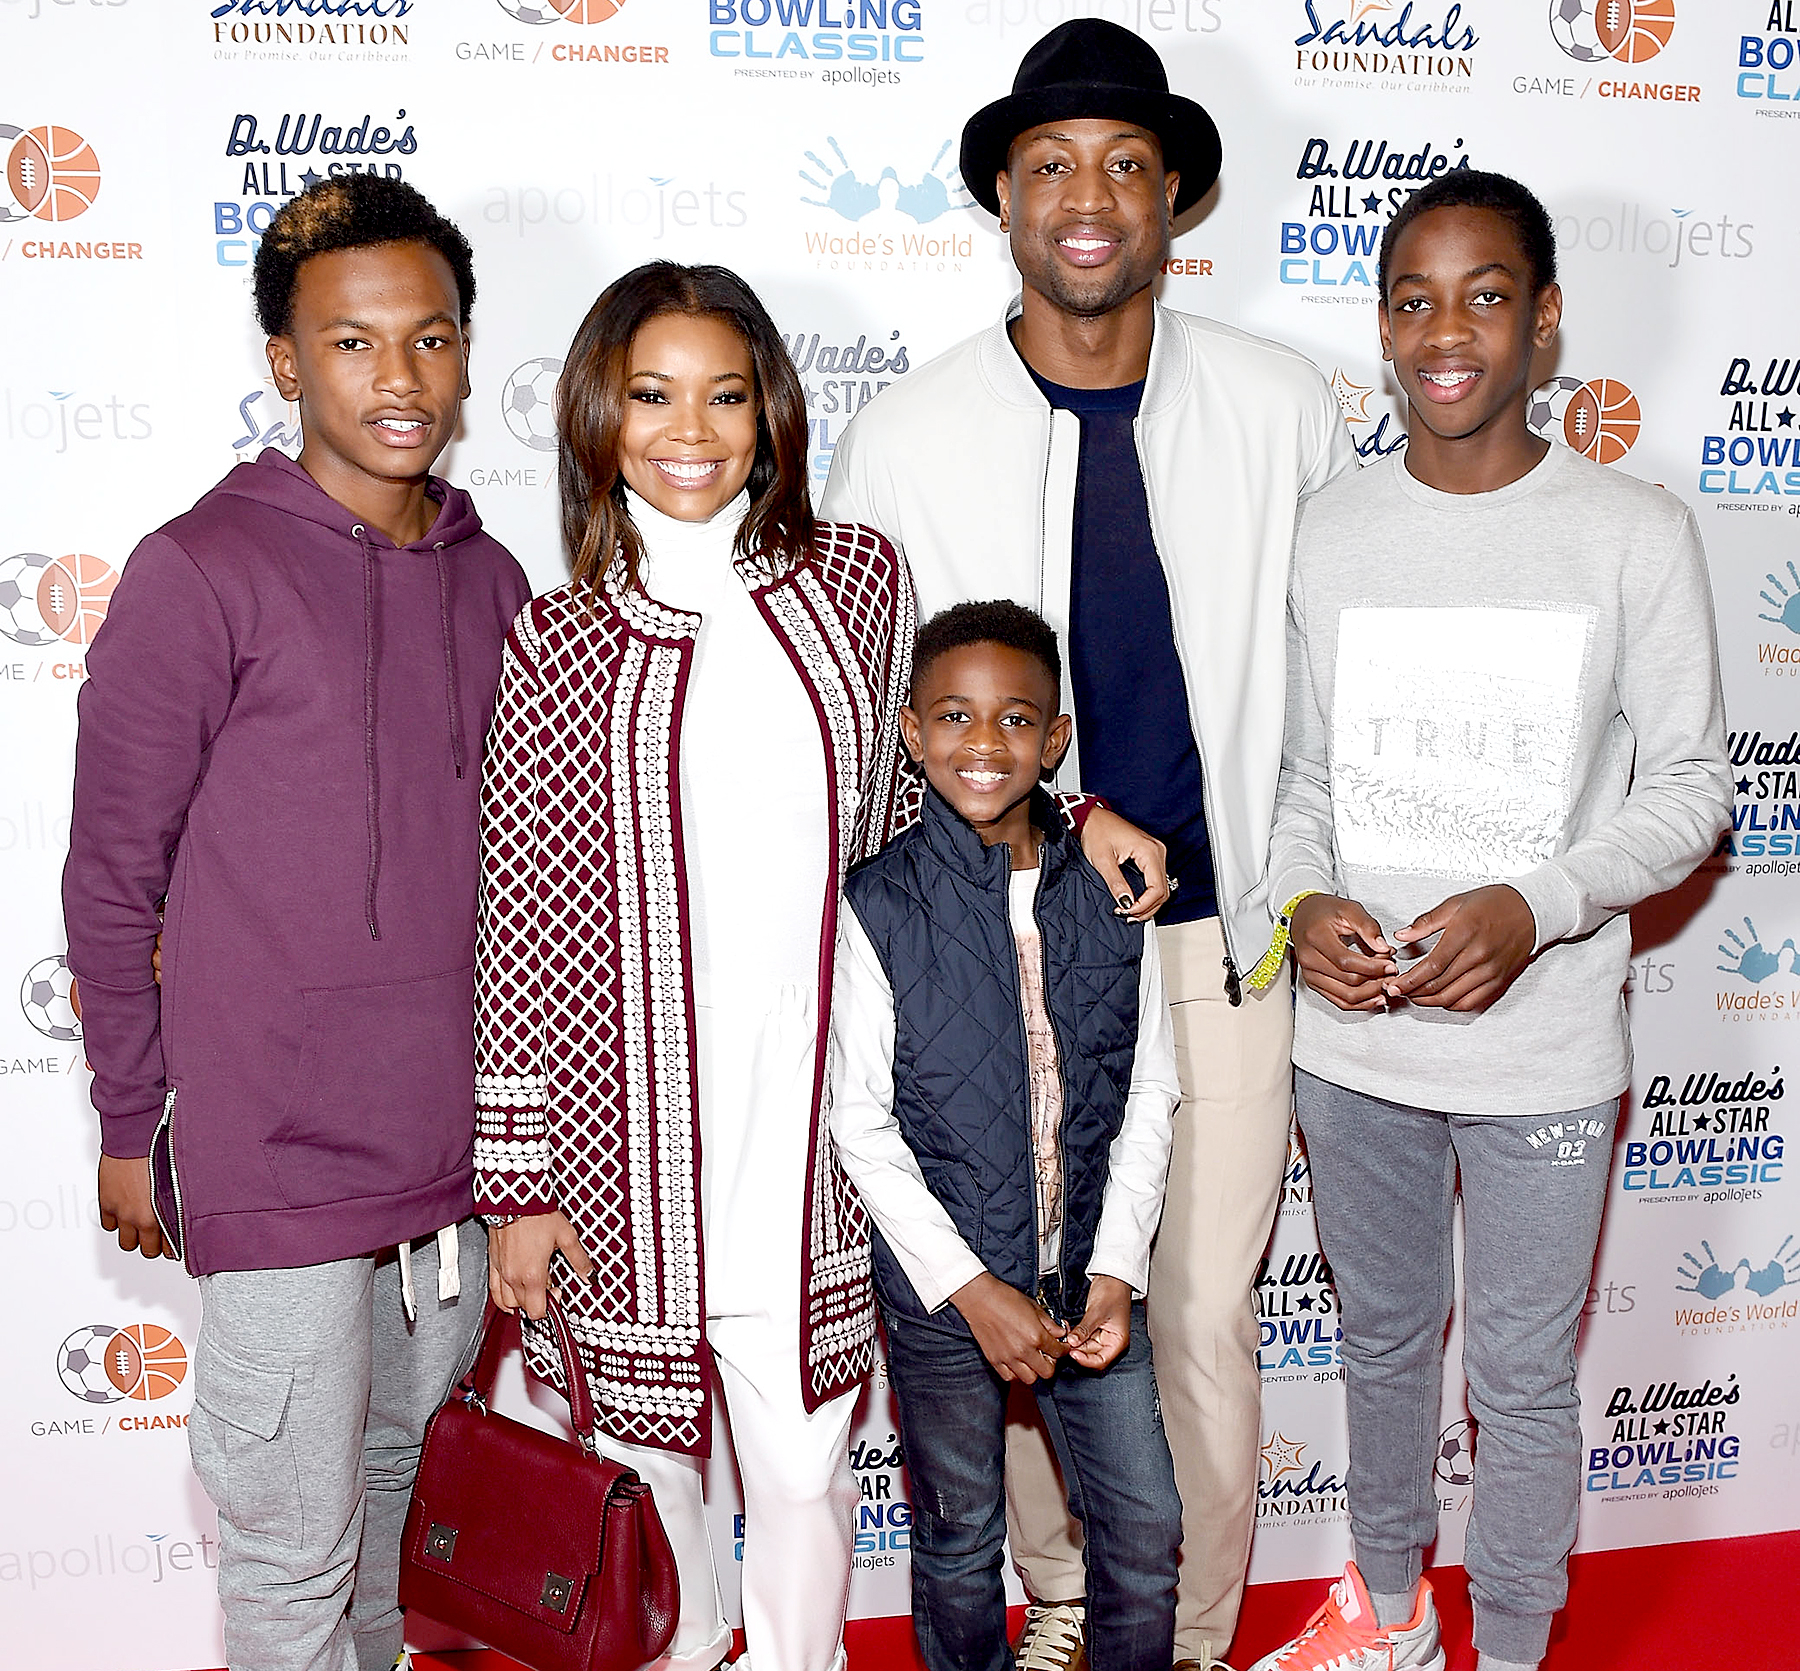 Dahveon Morris, Gabrielle Union, Zion Wade, Dwyane Wade, and Zaire Wade attend the DWade All Star Bowling Classic Benefitting The Sandals Foundation And Wade's World Foundation at The Ballroom on February 13, 2016.